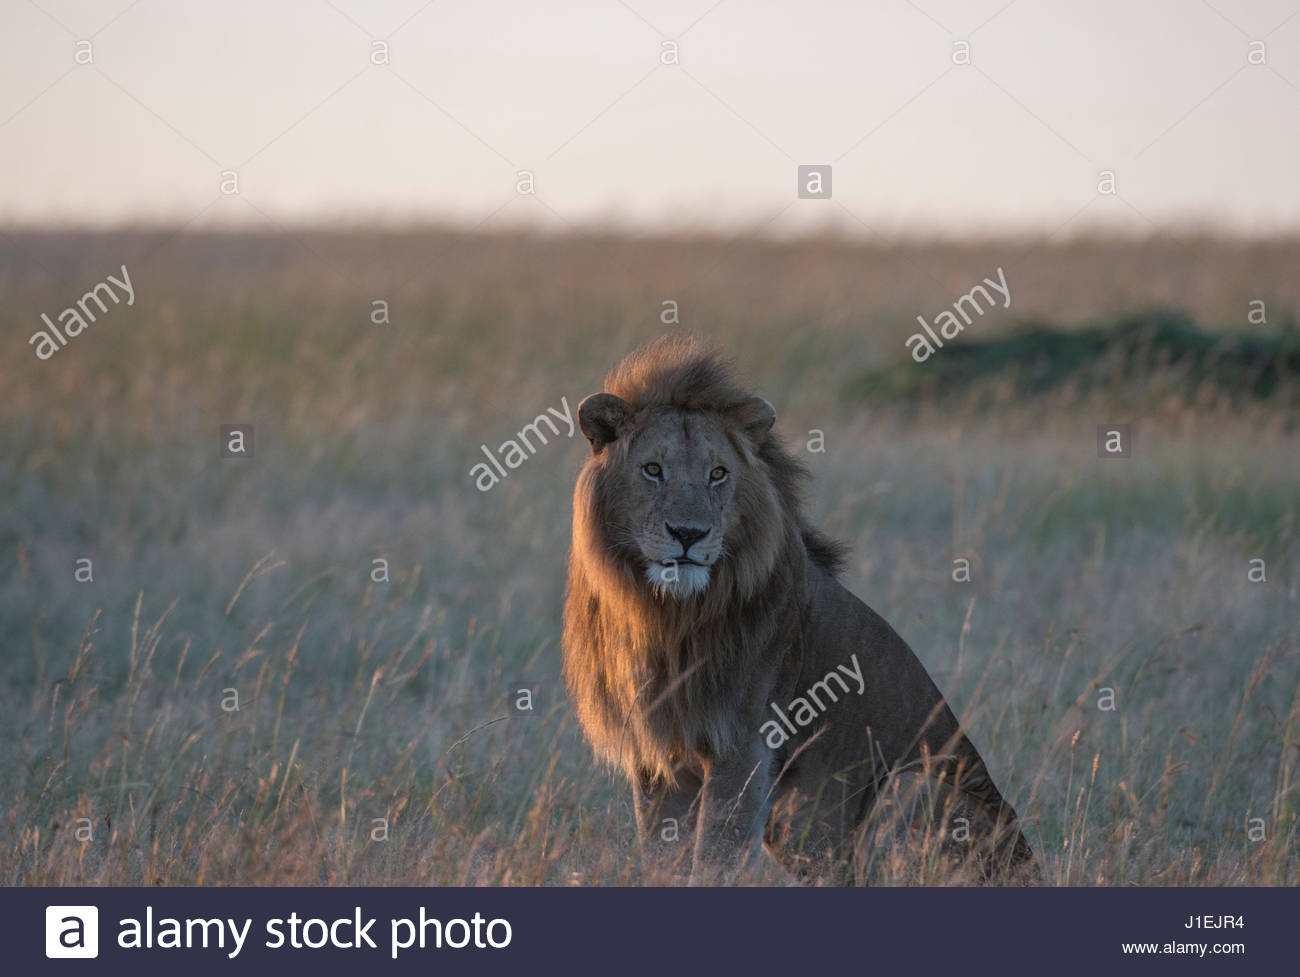 Sunlit male lion, Panthera leo, sitting in the dry grass. - Stock Image